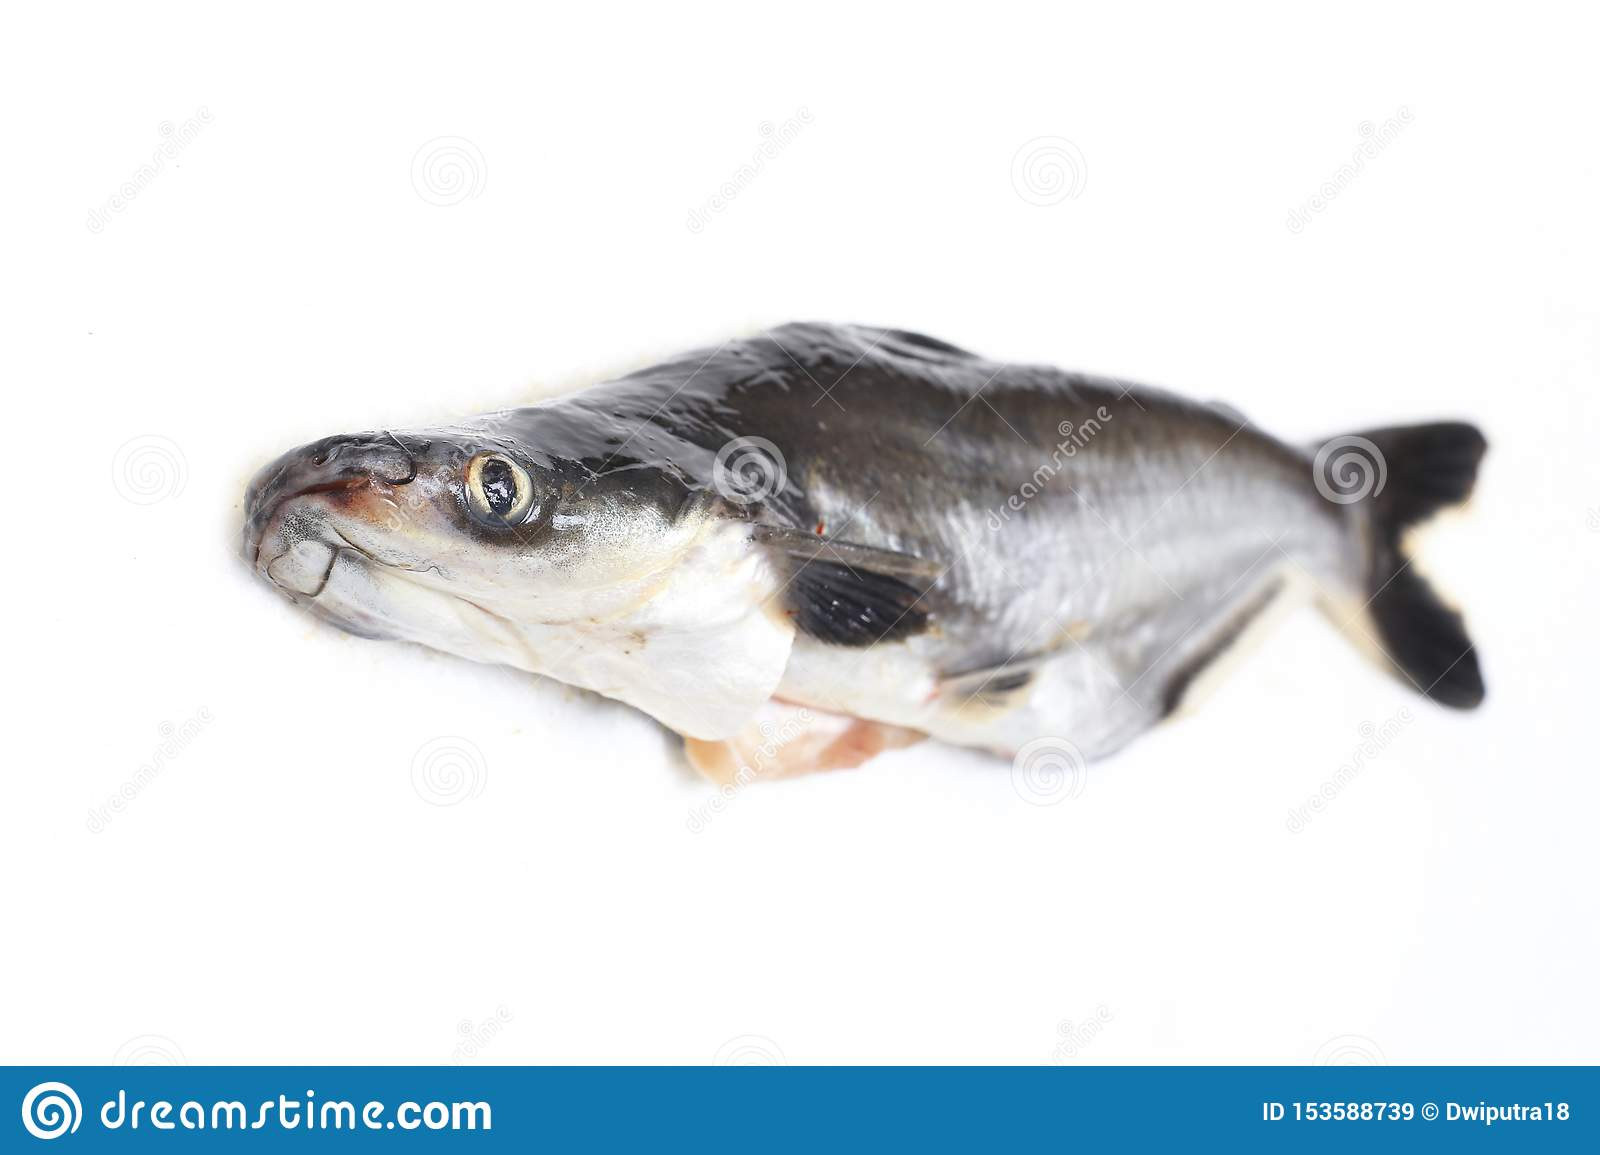 Ikan Patin Or Silver Catfish Or Iridescent Shark Fish Or